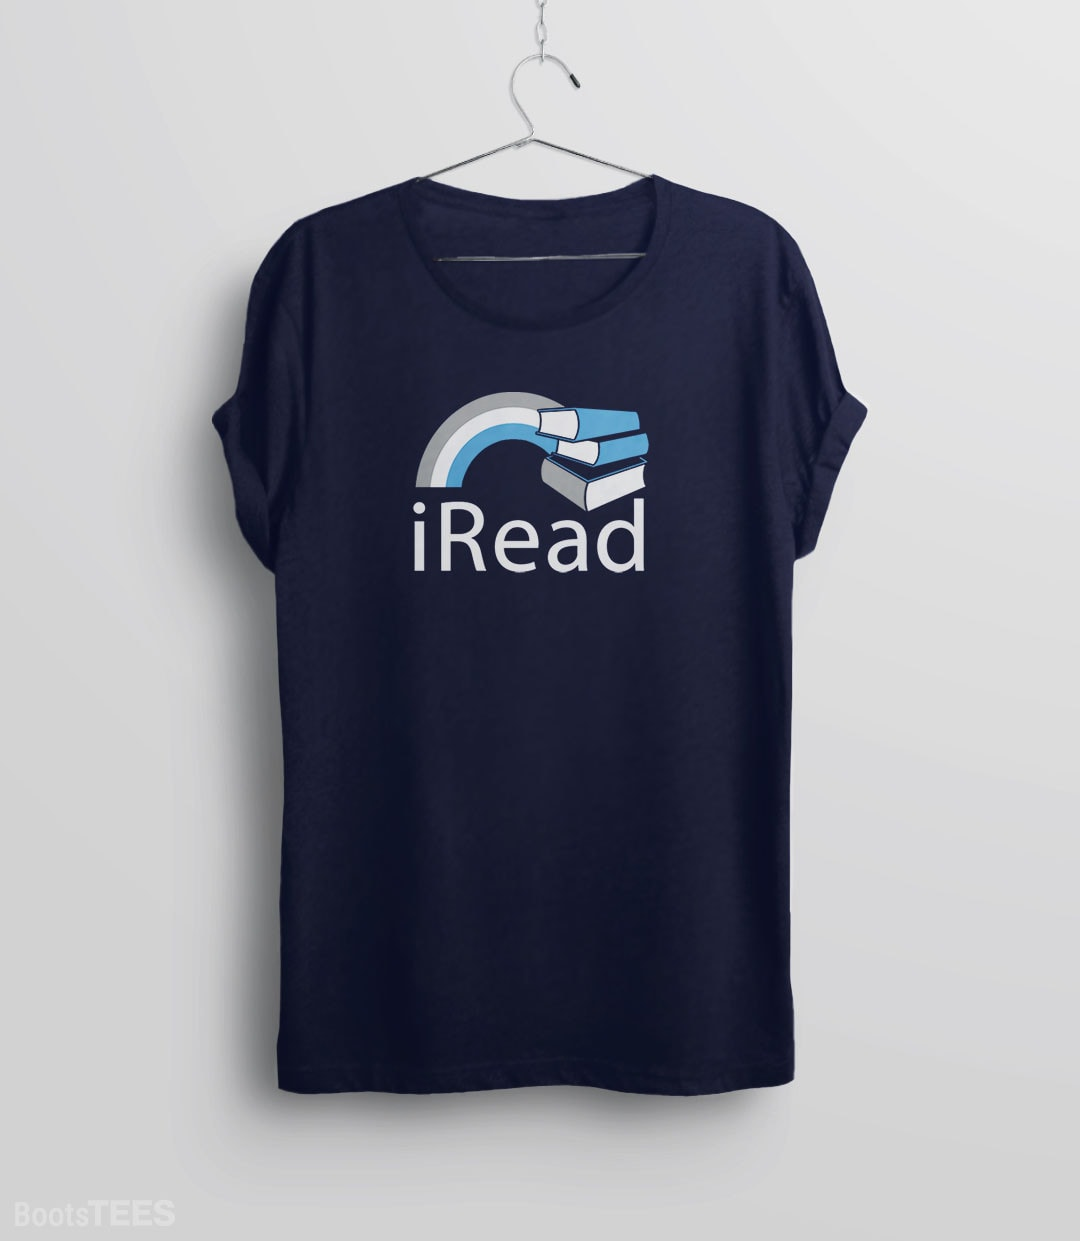 i Read, Navy Mens (Unisex) Tee by BootsTees